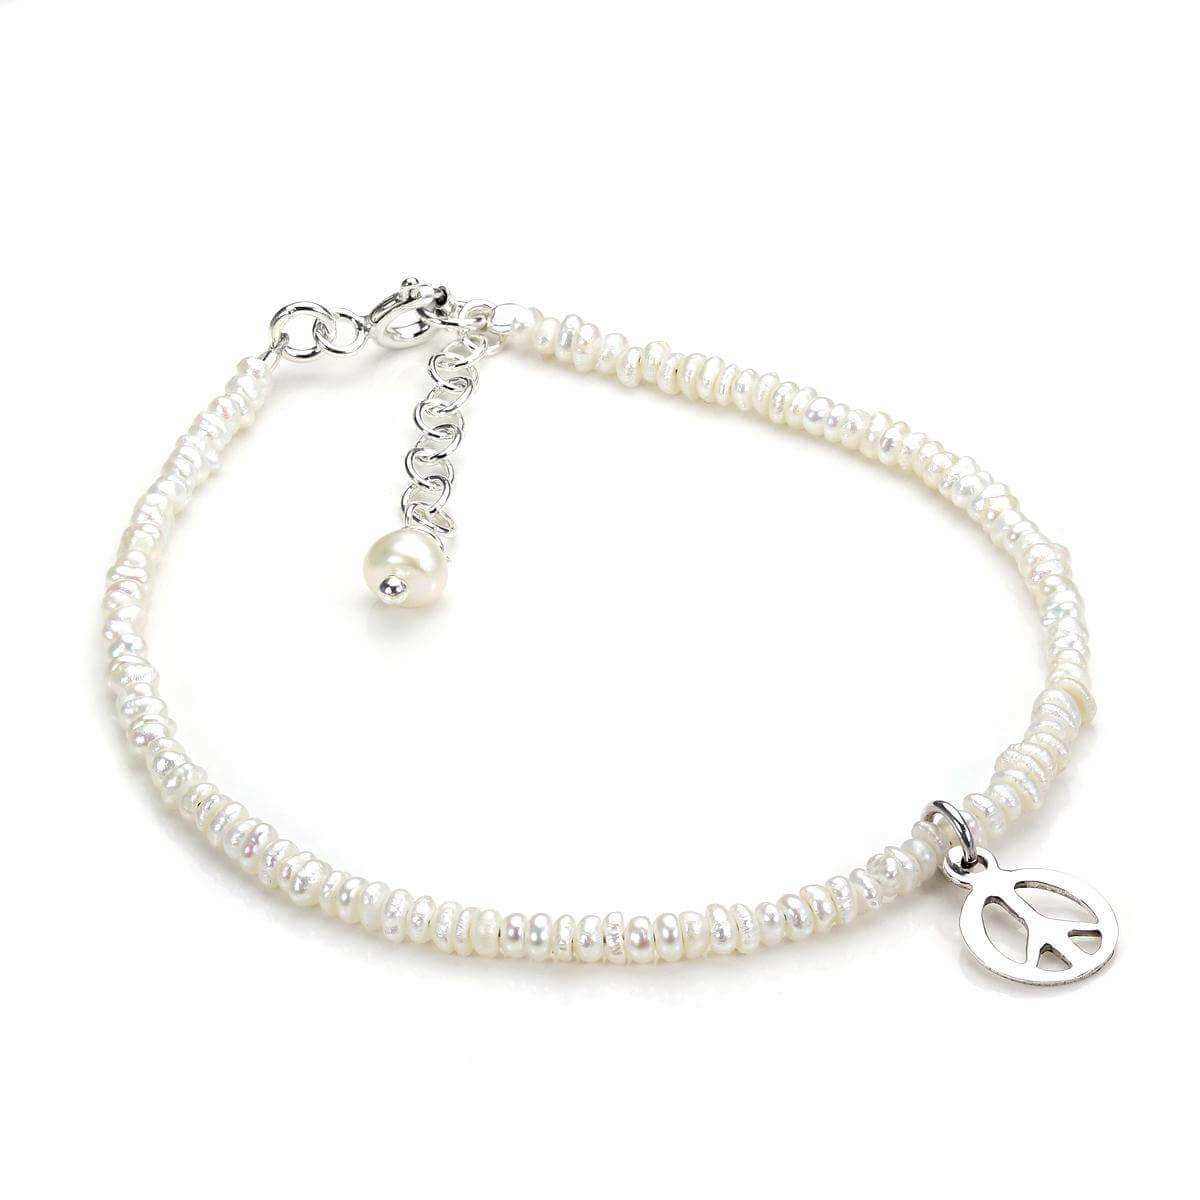 Sterling Silver & White Freshwater Pearl Bracelet with Peace Charm